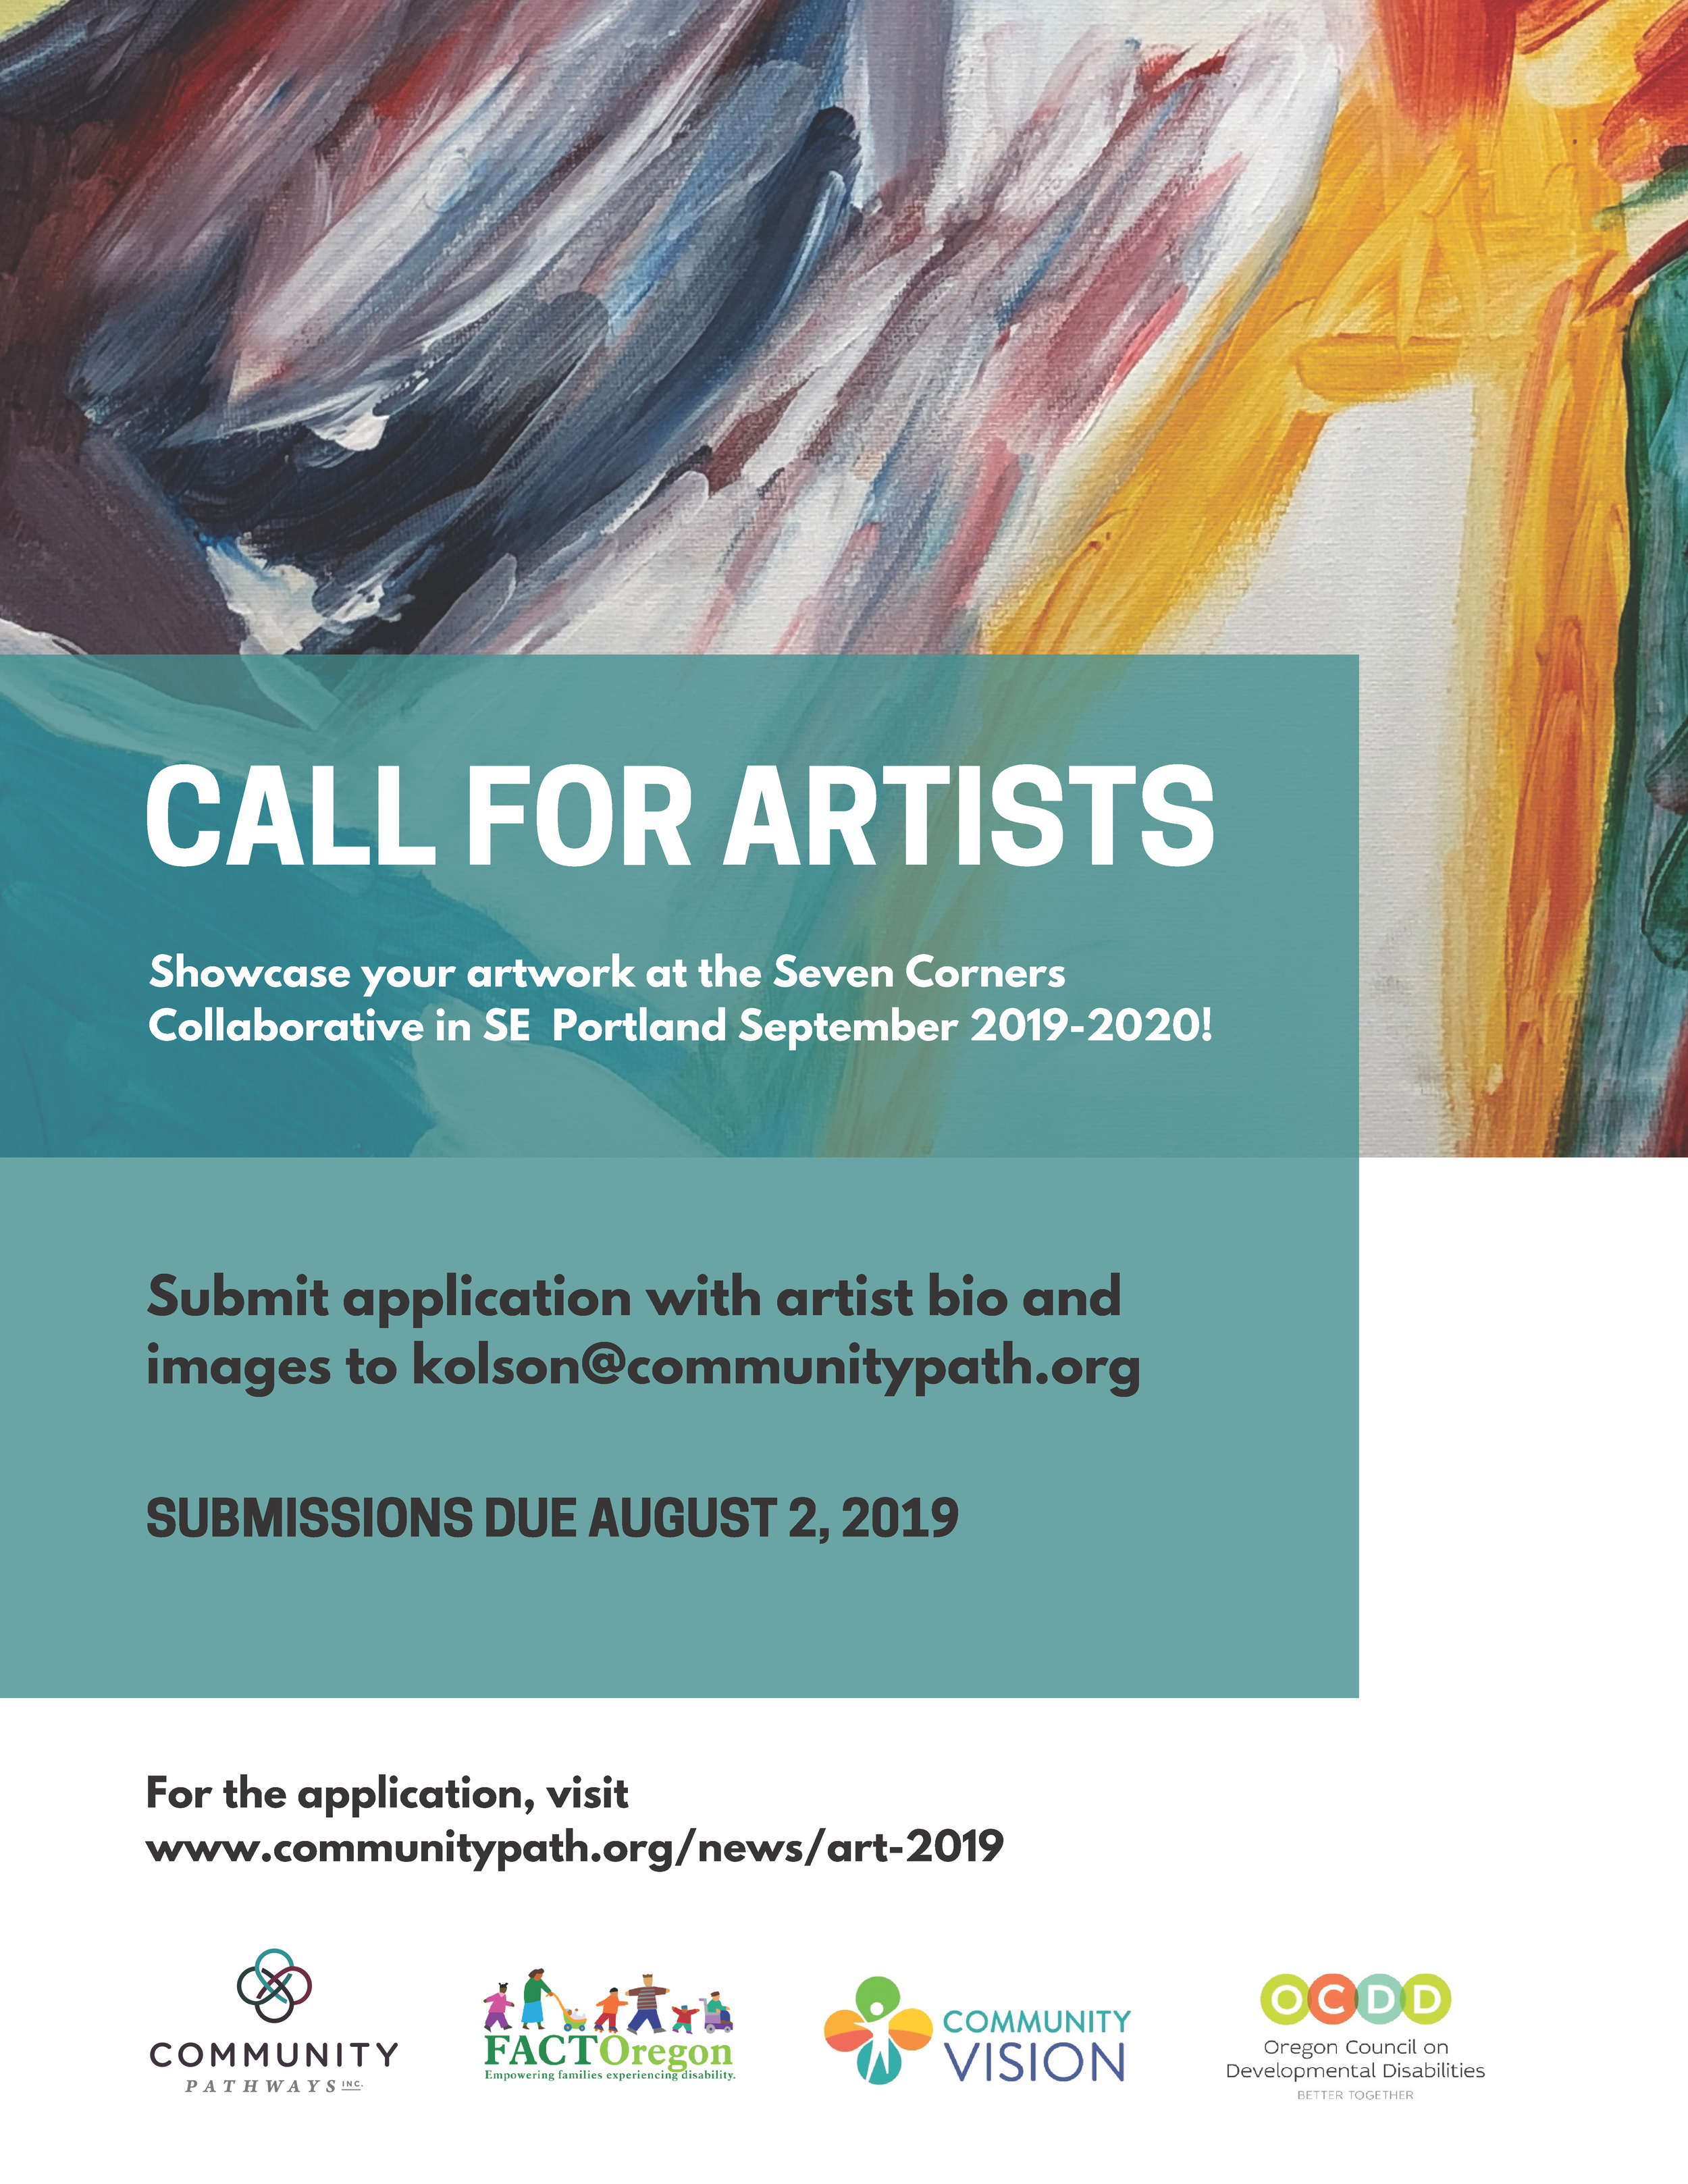 Call for Artists-mailchimp.png